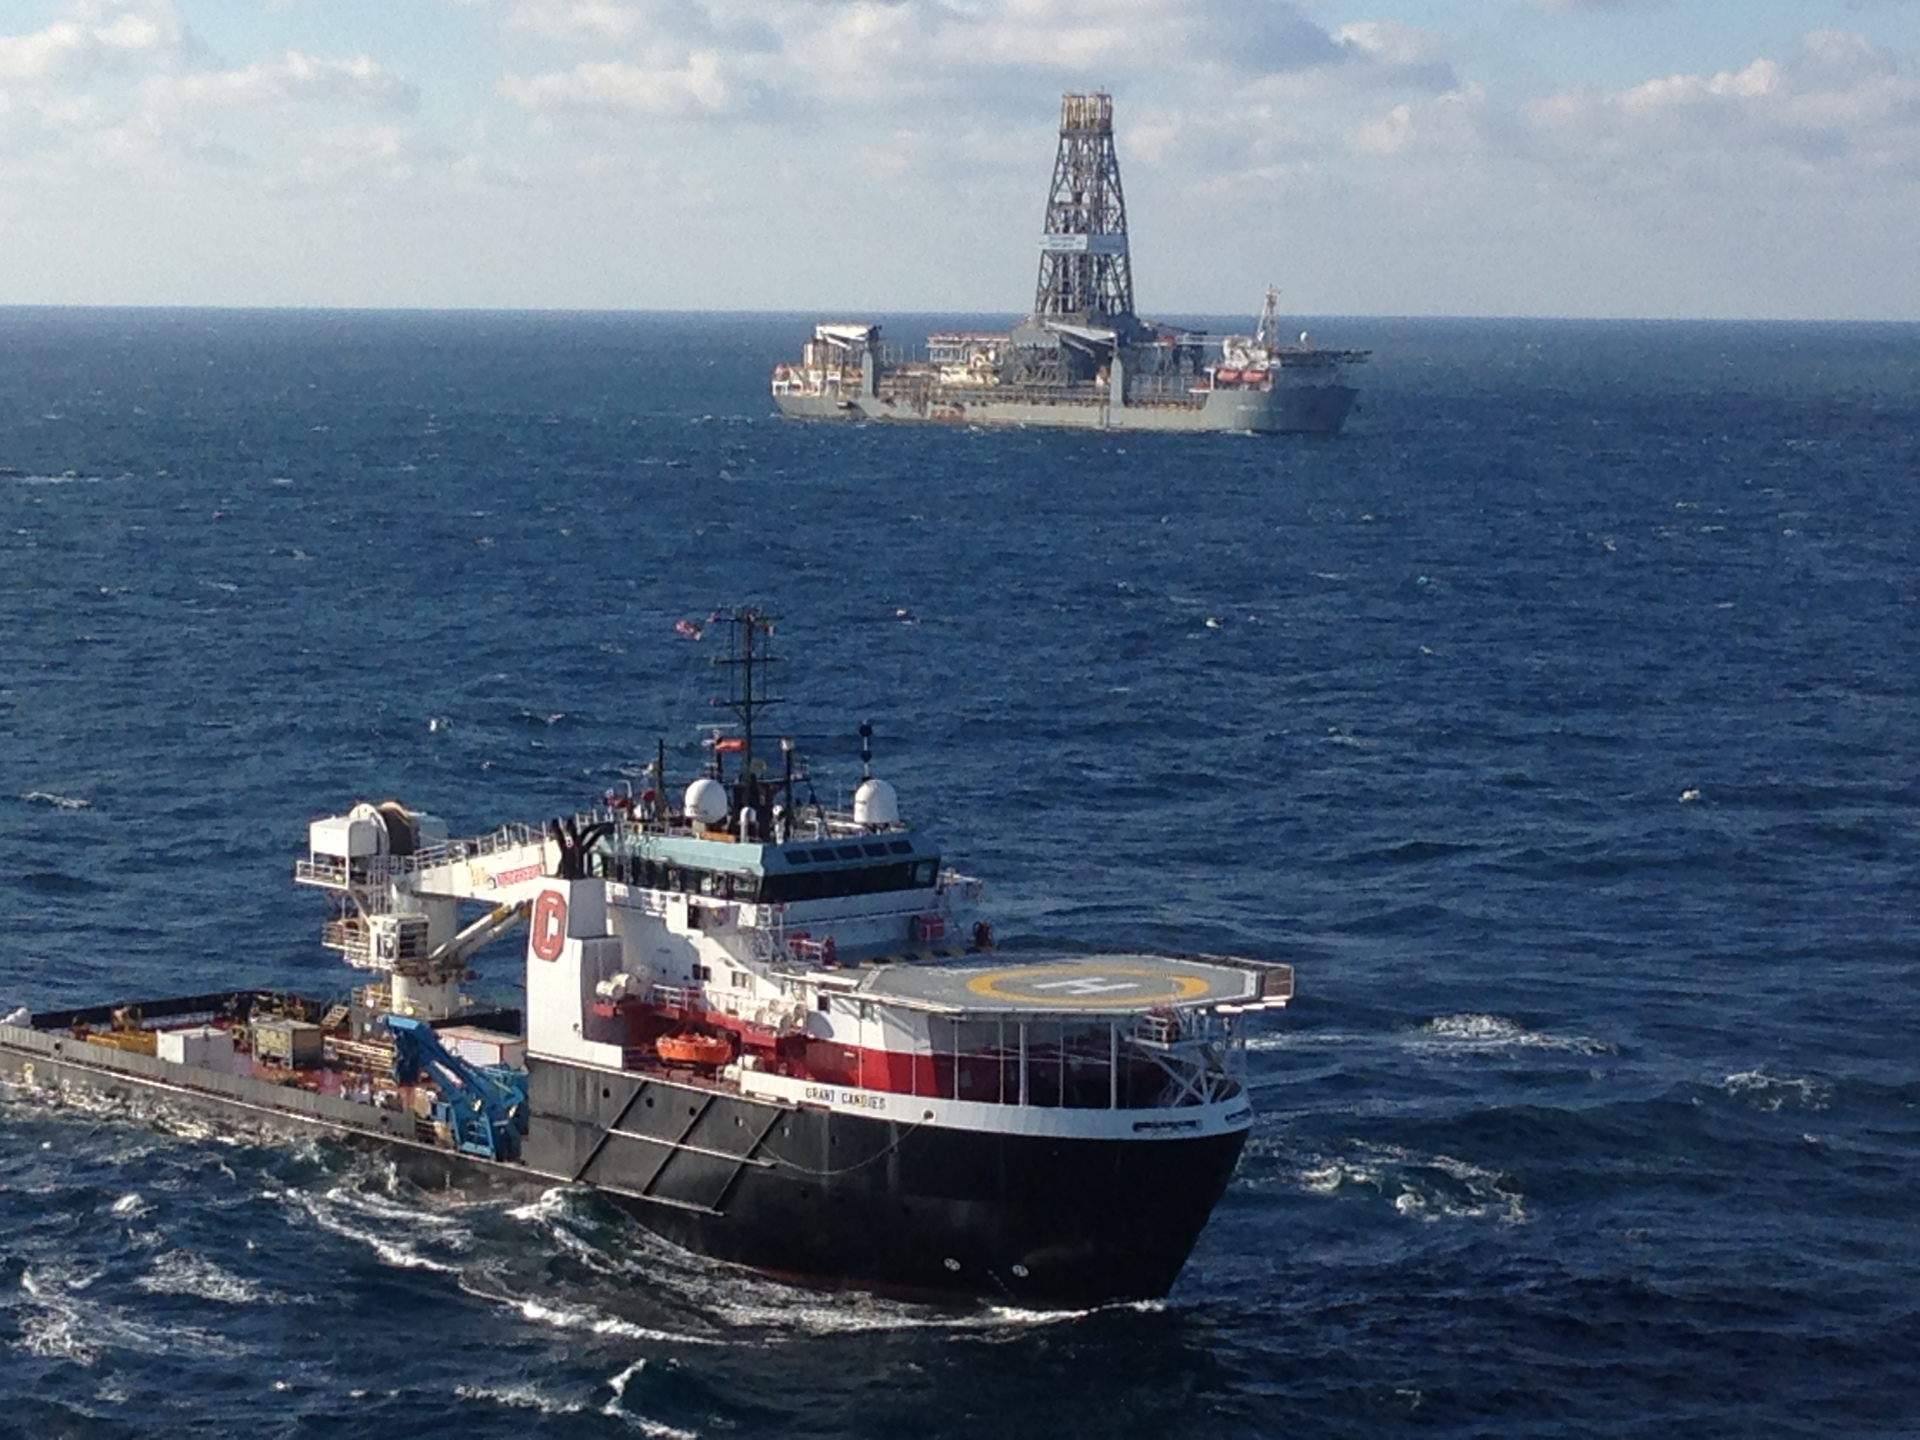 Installation, Operations, Drilling, Subsea, Deepwater, Deep, Water, Vessel, Third, Party, Inspection, Offshore, Engineering, Installation, Commissioning, IWOCS, Intervention, Workover, SURF, Field